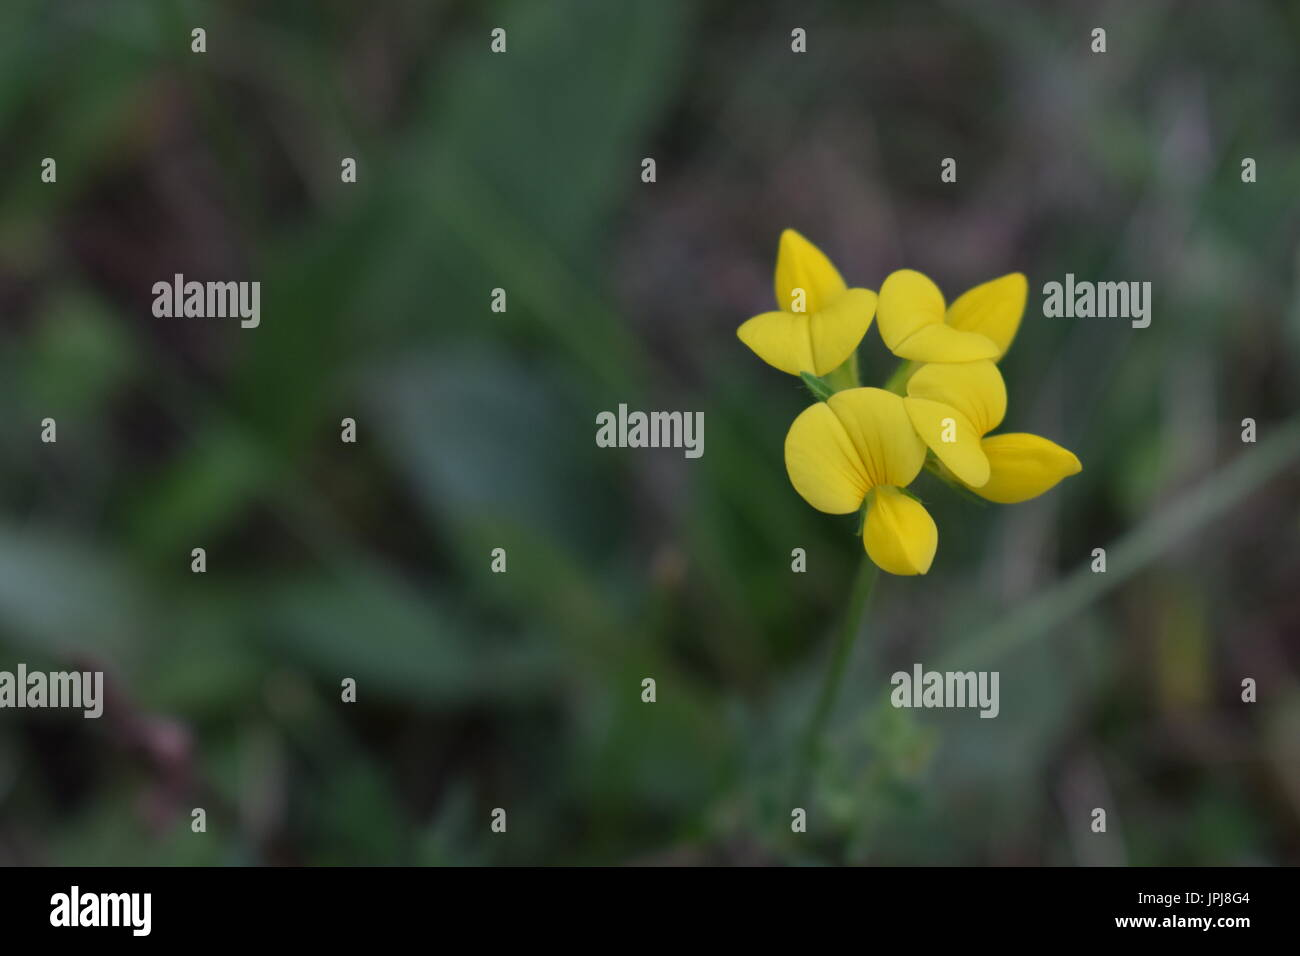 Yellow flower in nature on blurred background - Stock Image